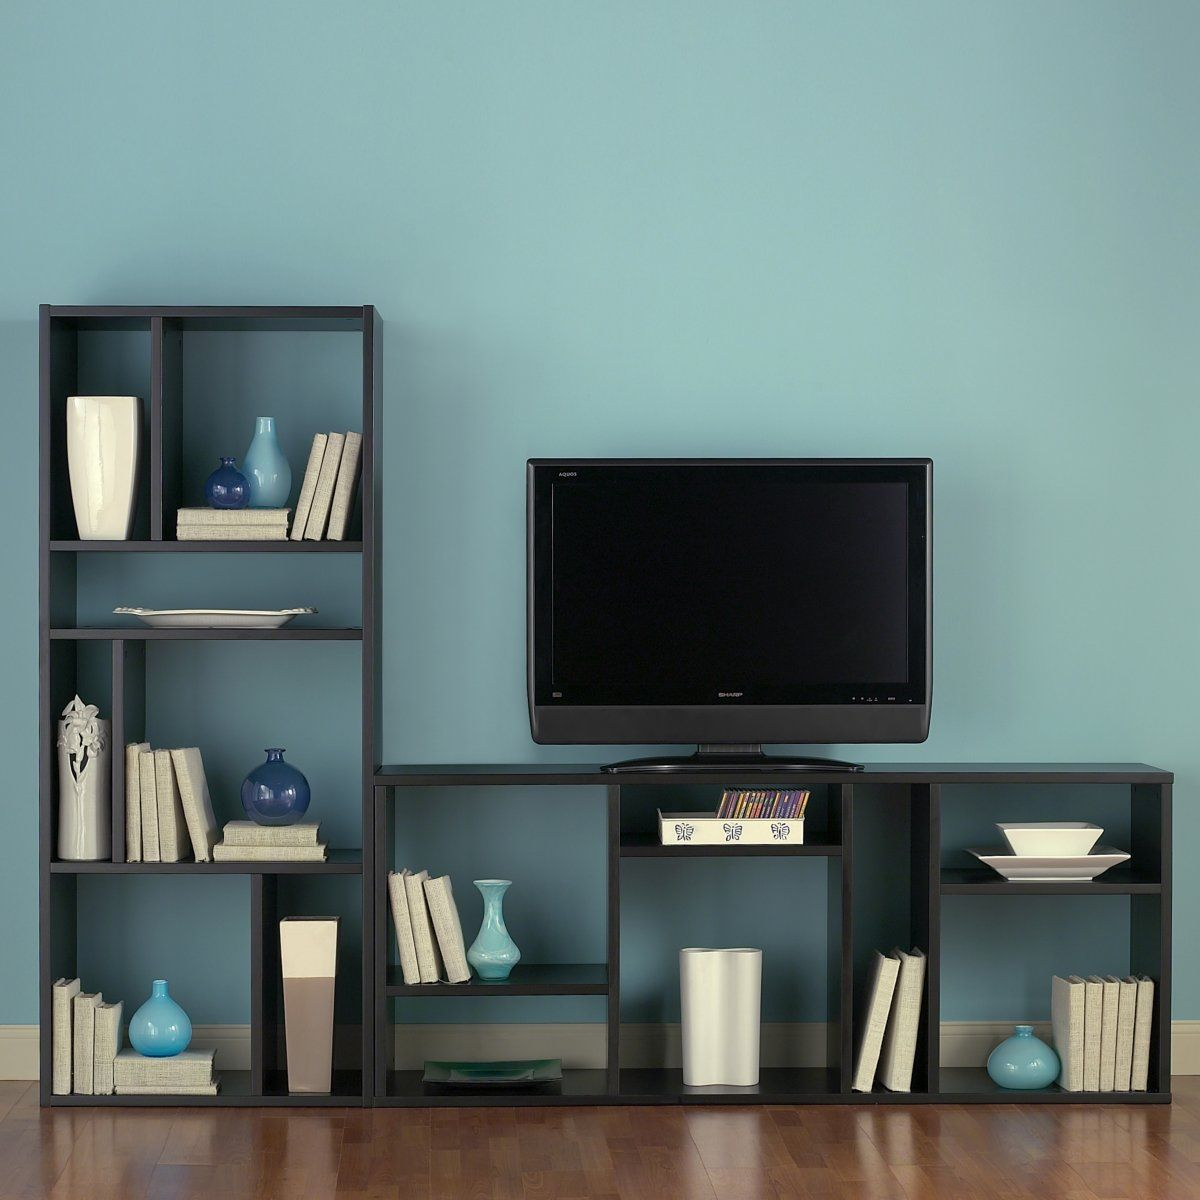 photos attachment bookcase image ikea view outstanding living stand of furniture bookcases room with tv stands gallery within home